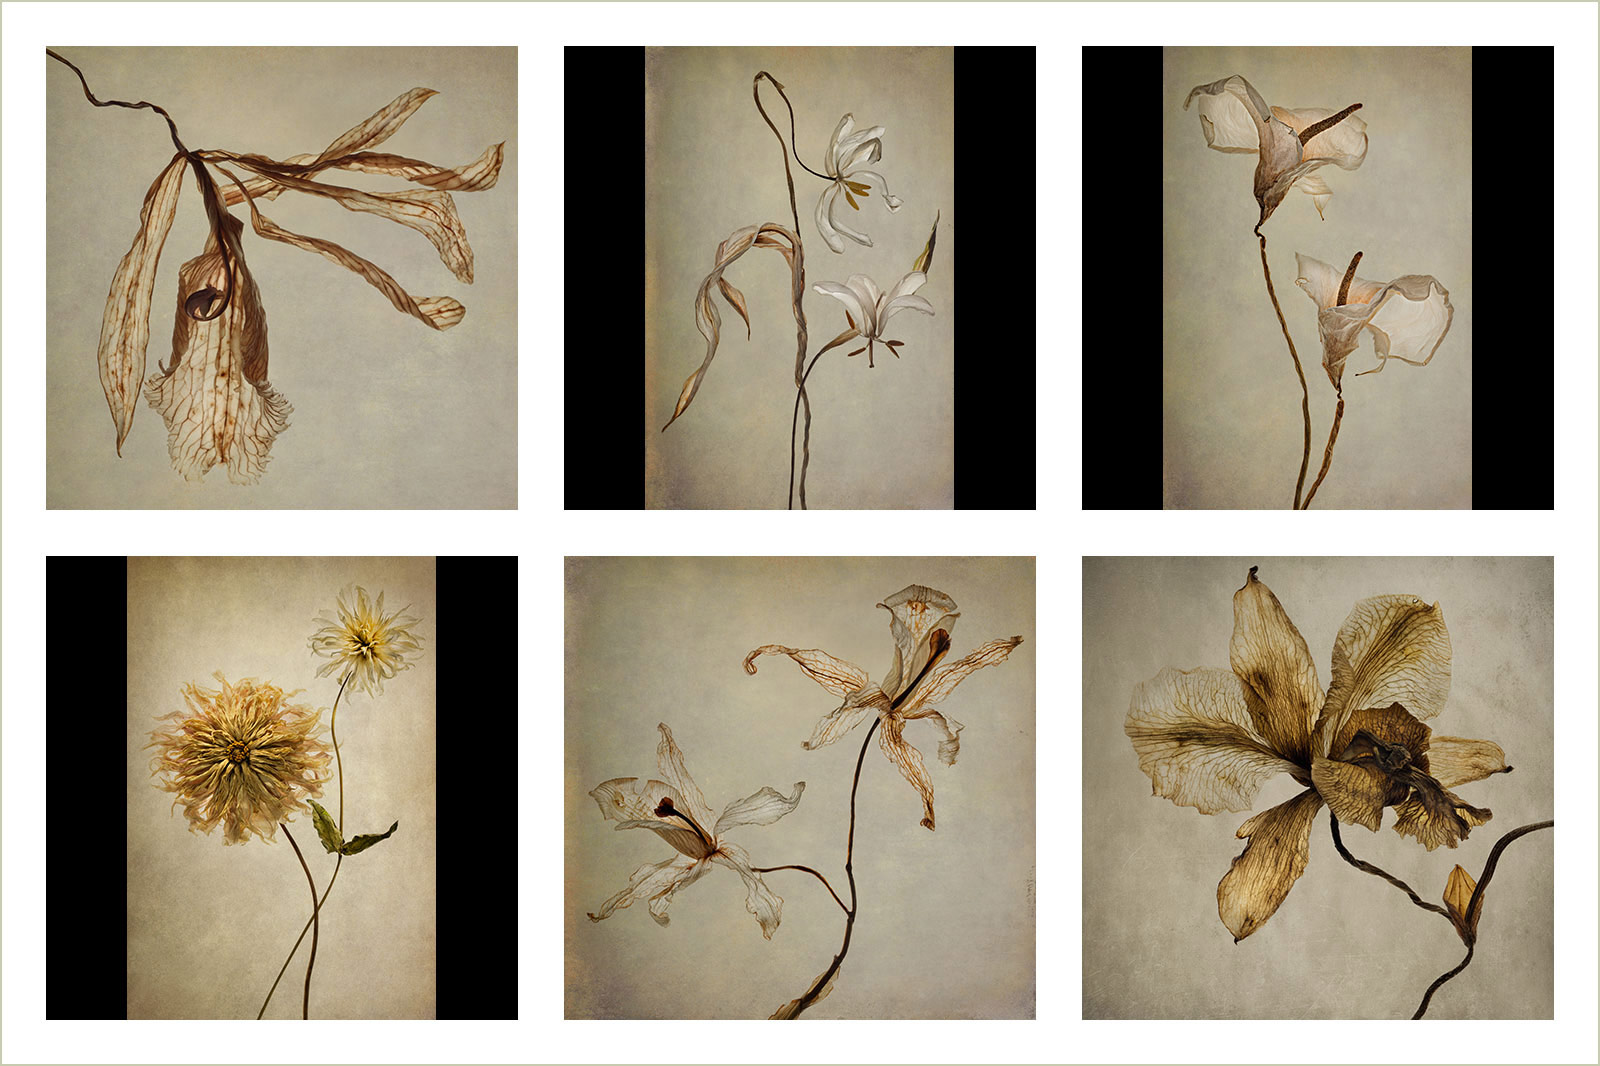 Past Perfect, © Polina Plotnikova, Gold medal winner in category Portfolio, RHS Photographic Competition / RHS Gardening